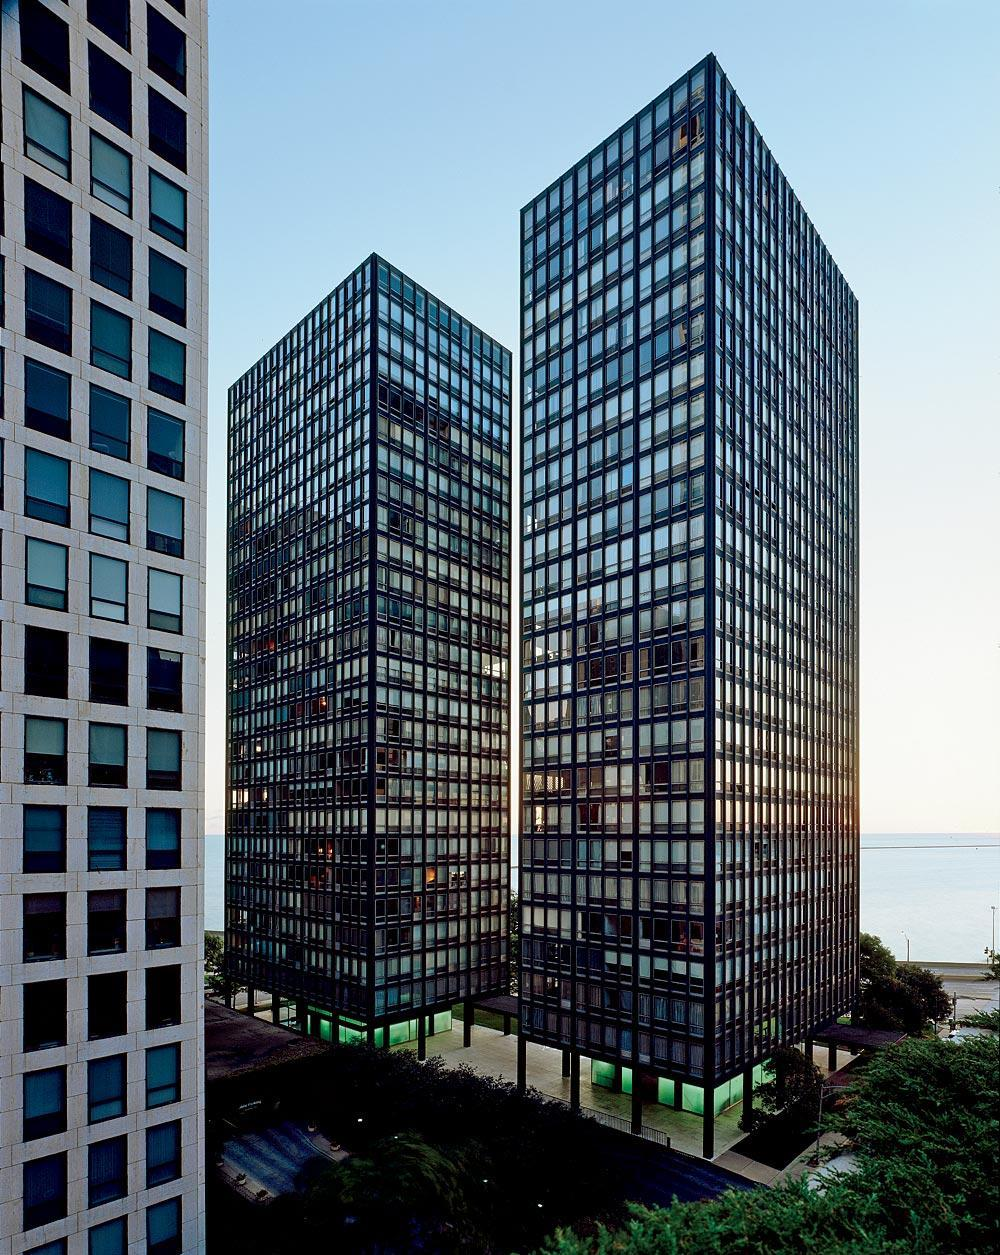 Mies Residences on Lake Shore Drive in Chicago. Photo: Chicago Mag